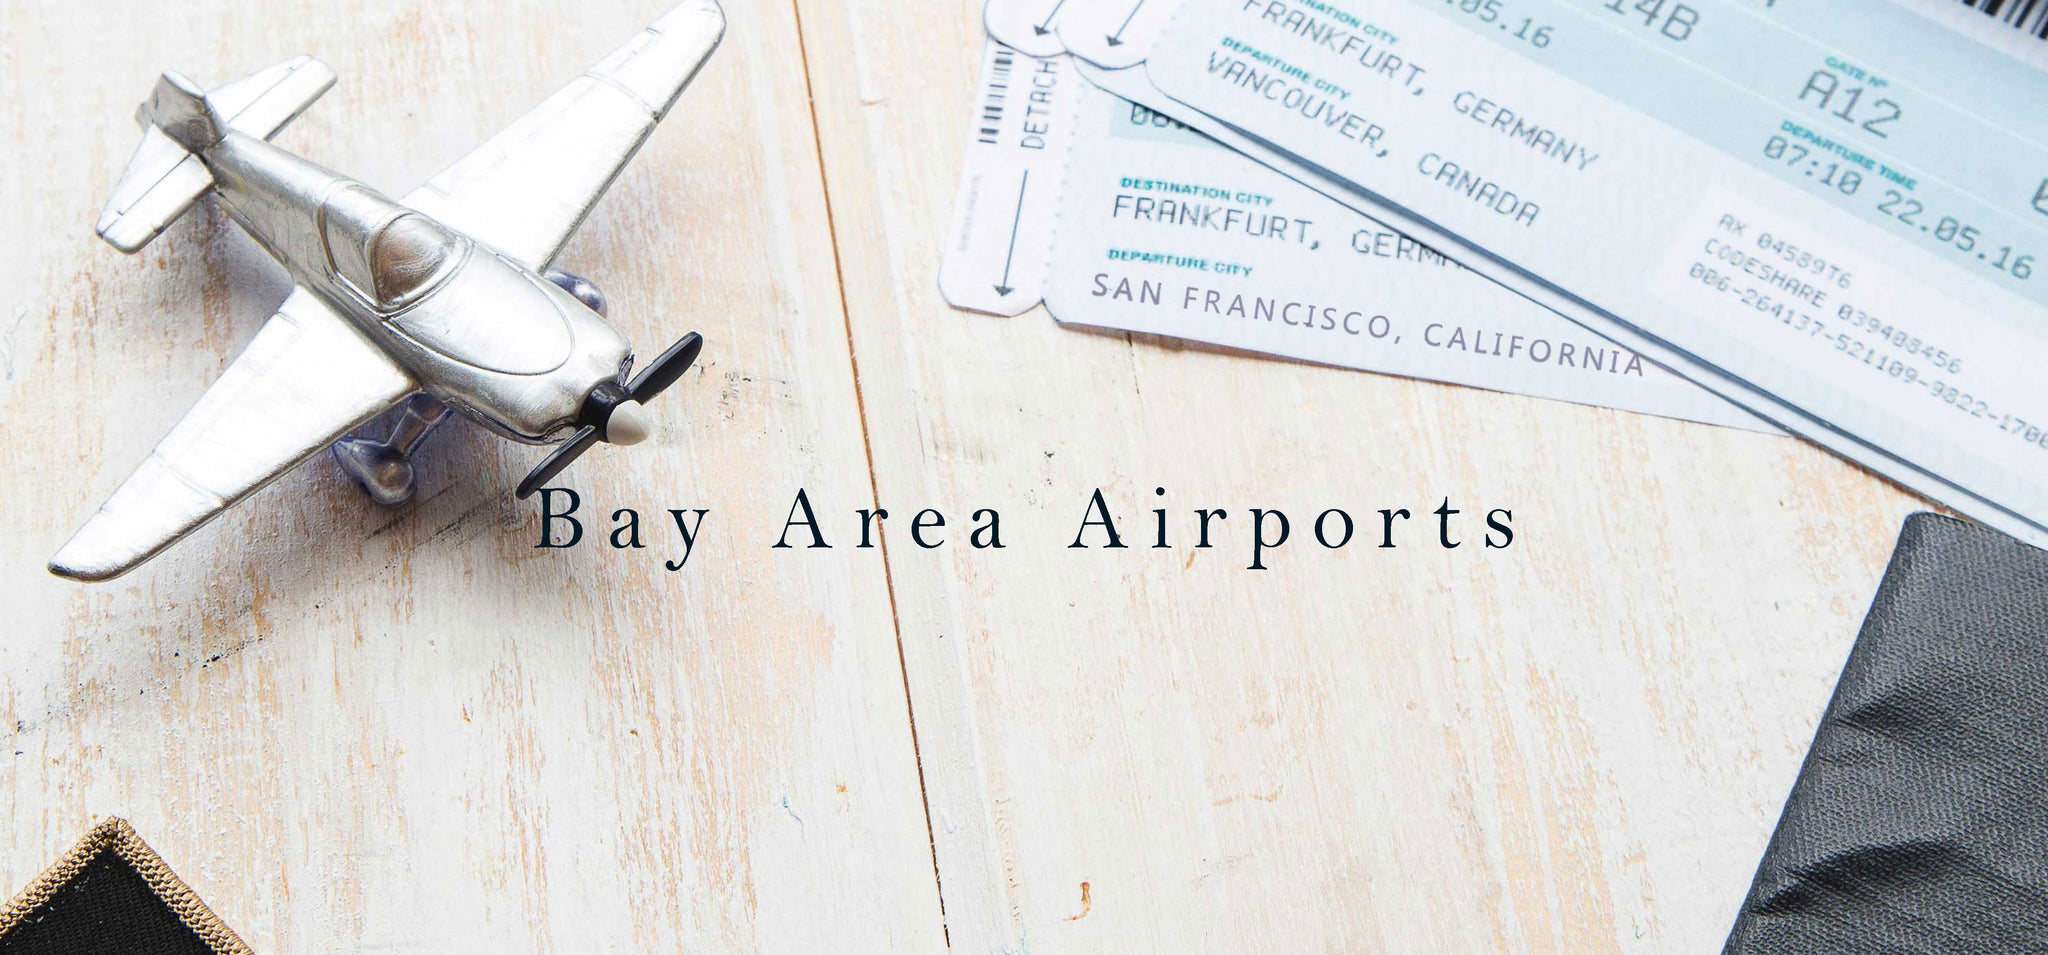 Toy airplane and plane tickets departing SFO